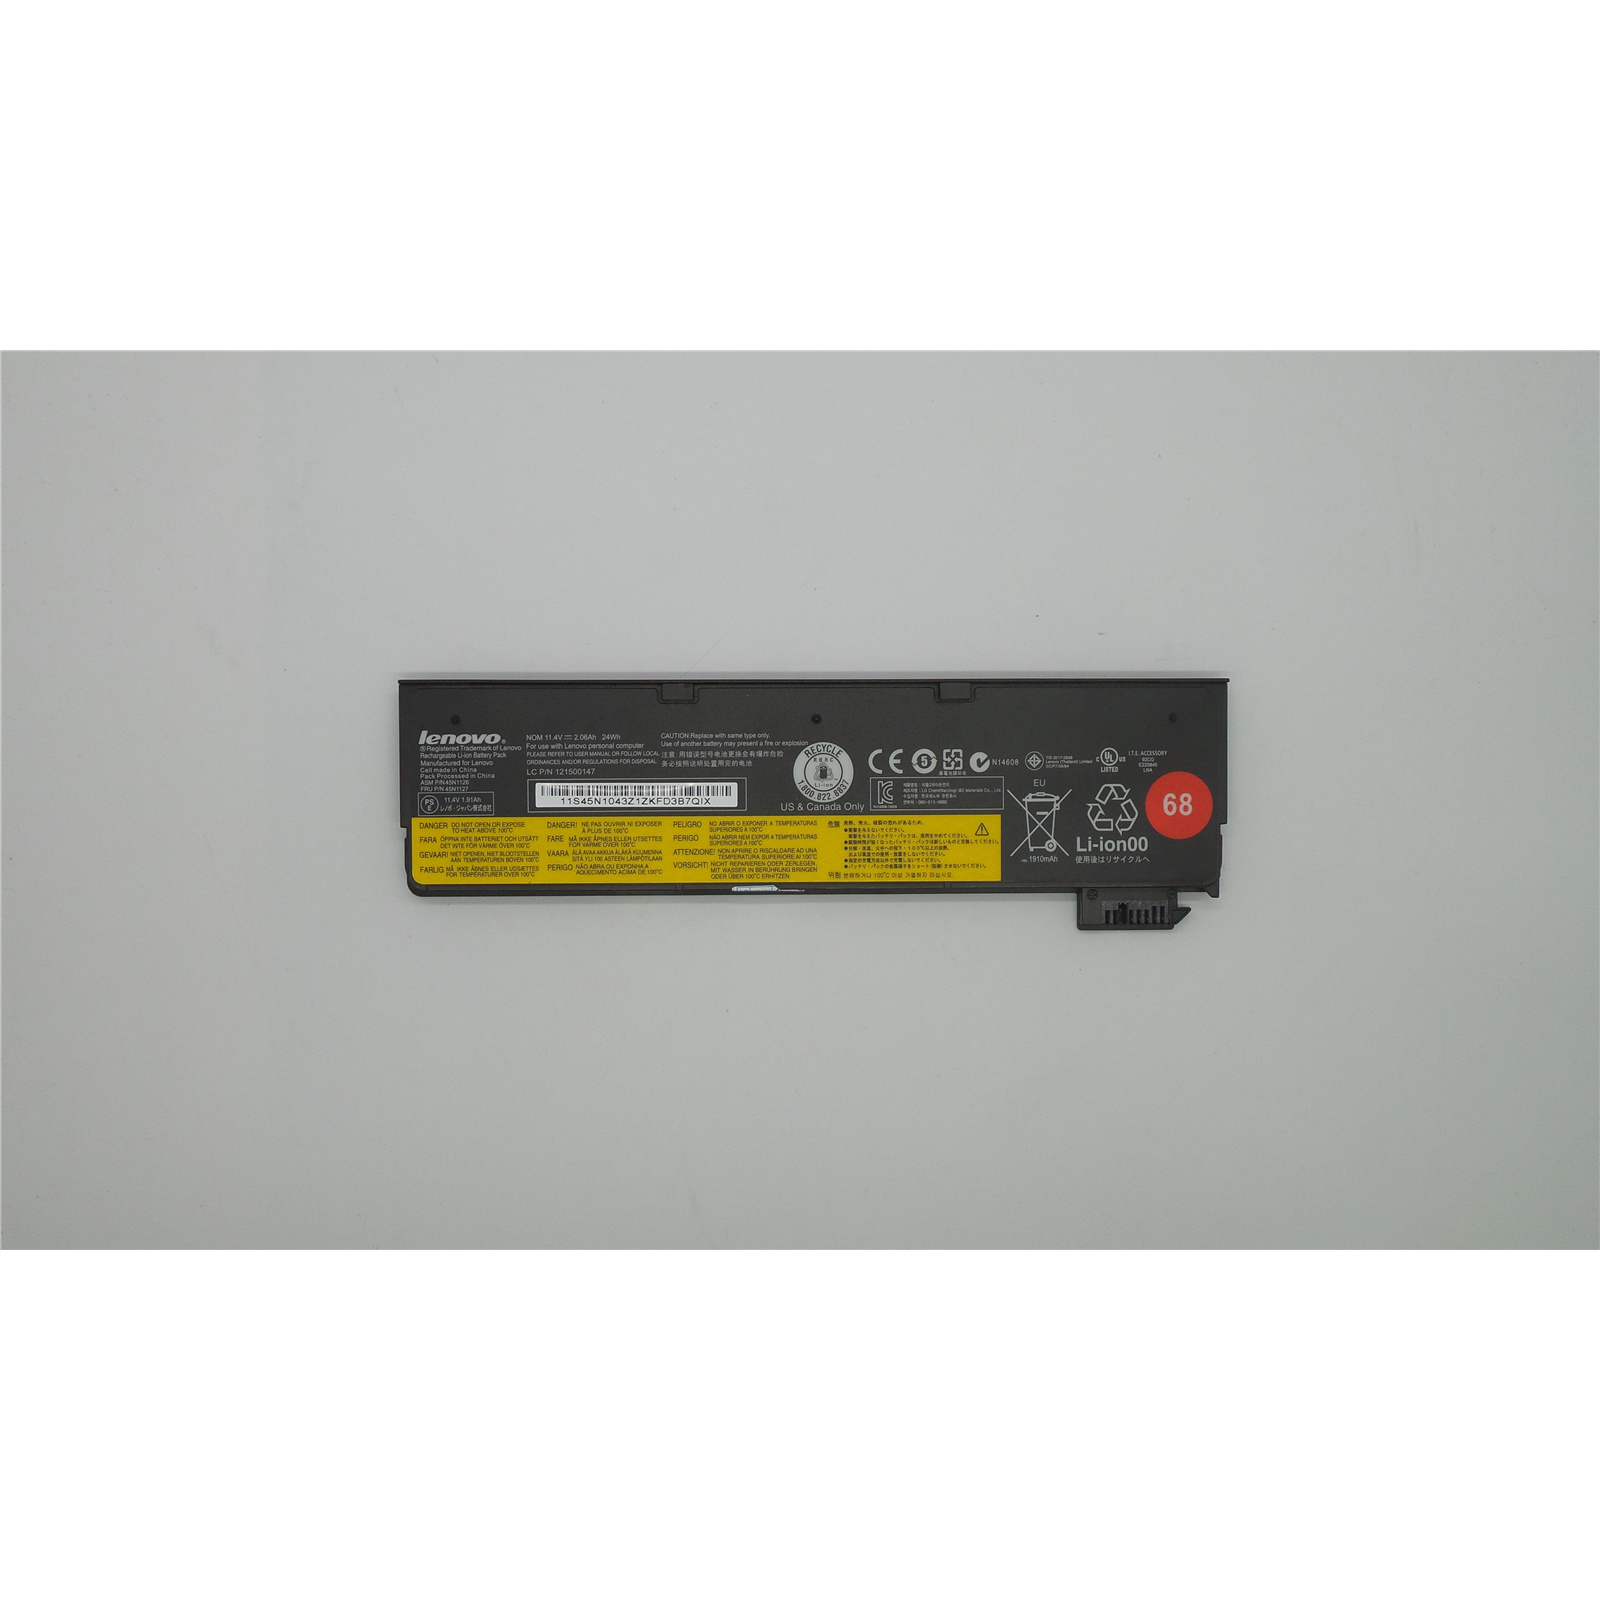 Buy the OEM Lenovo Battery 45N1126 For ThinkPad X240 T440 T450S